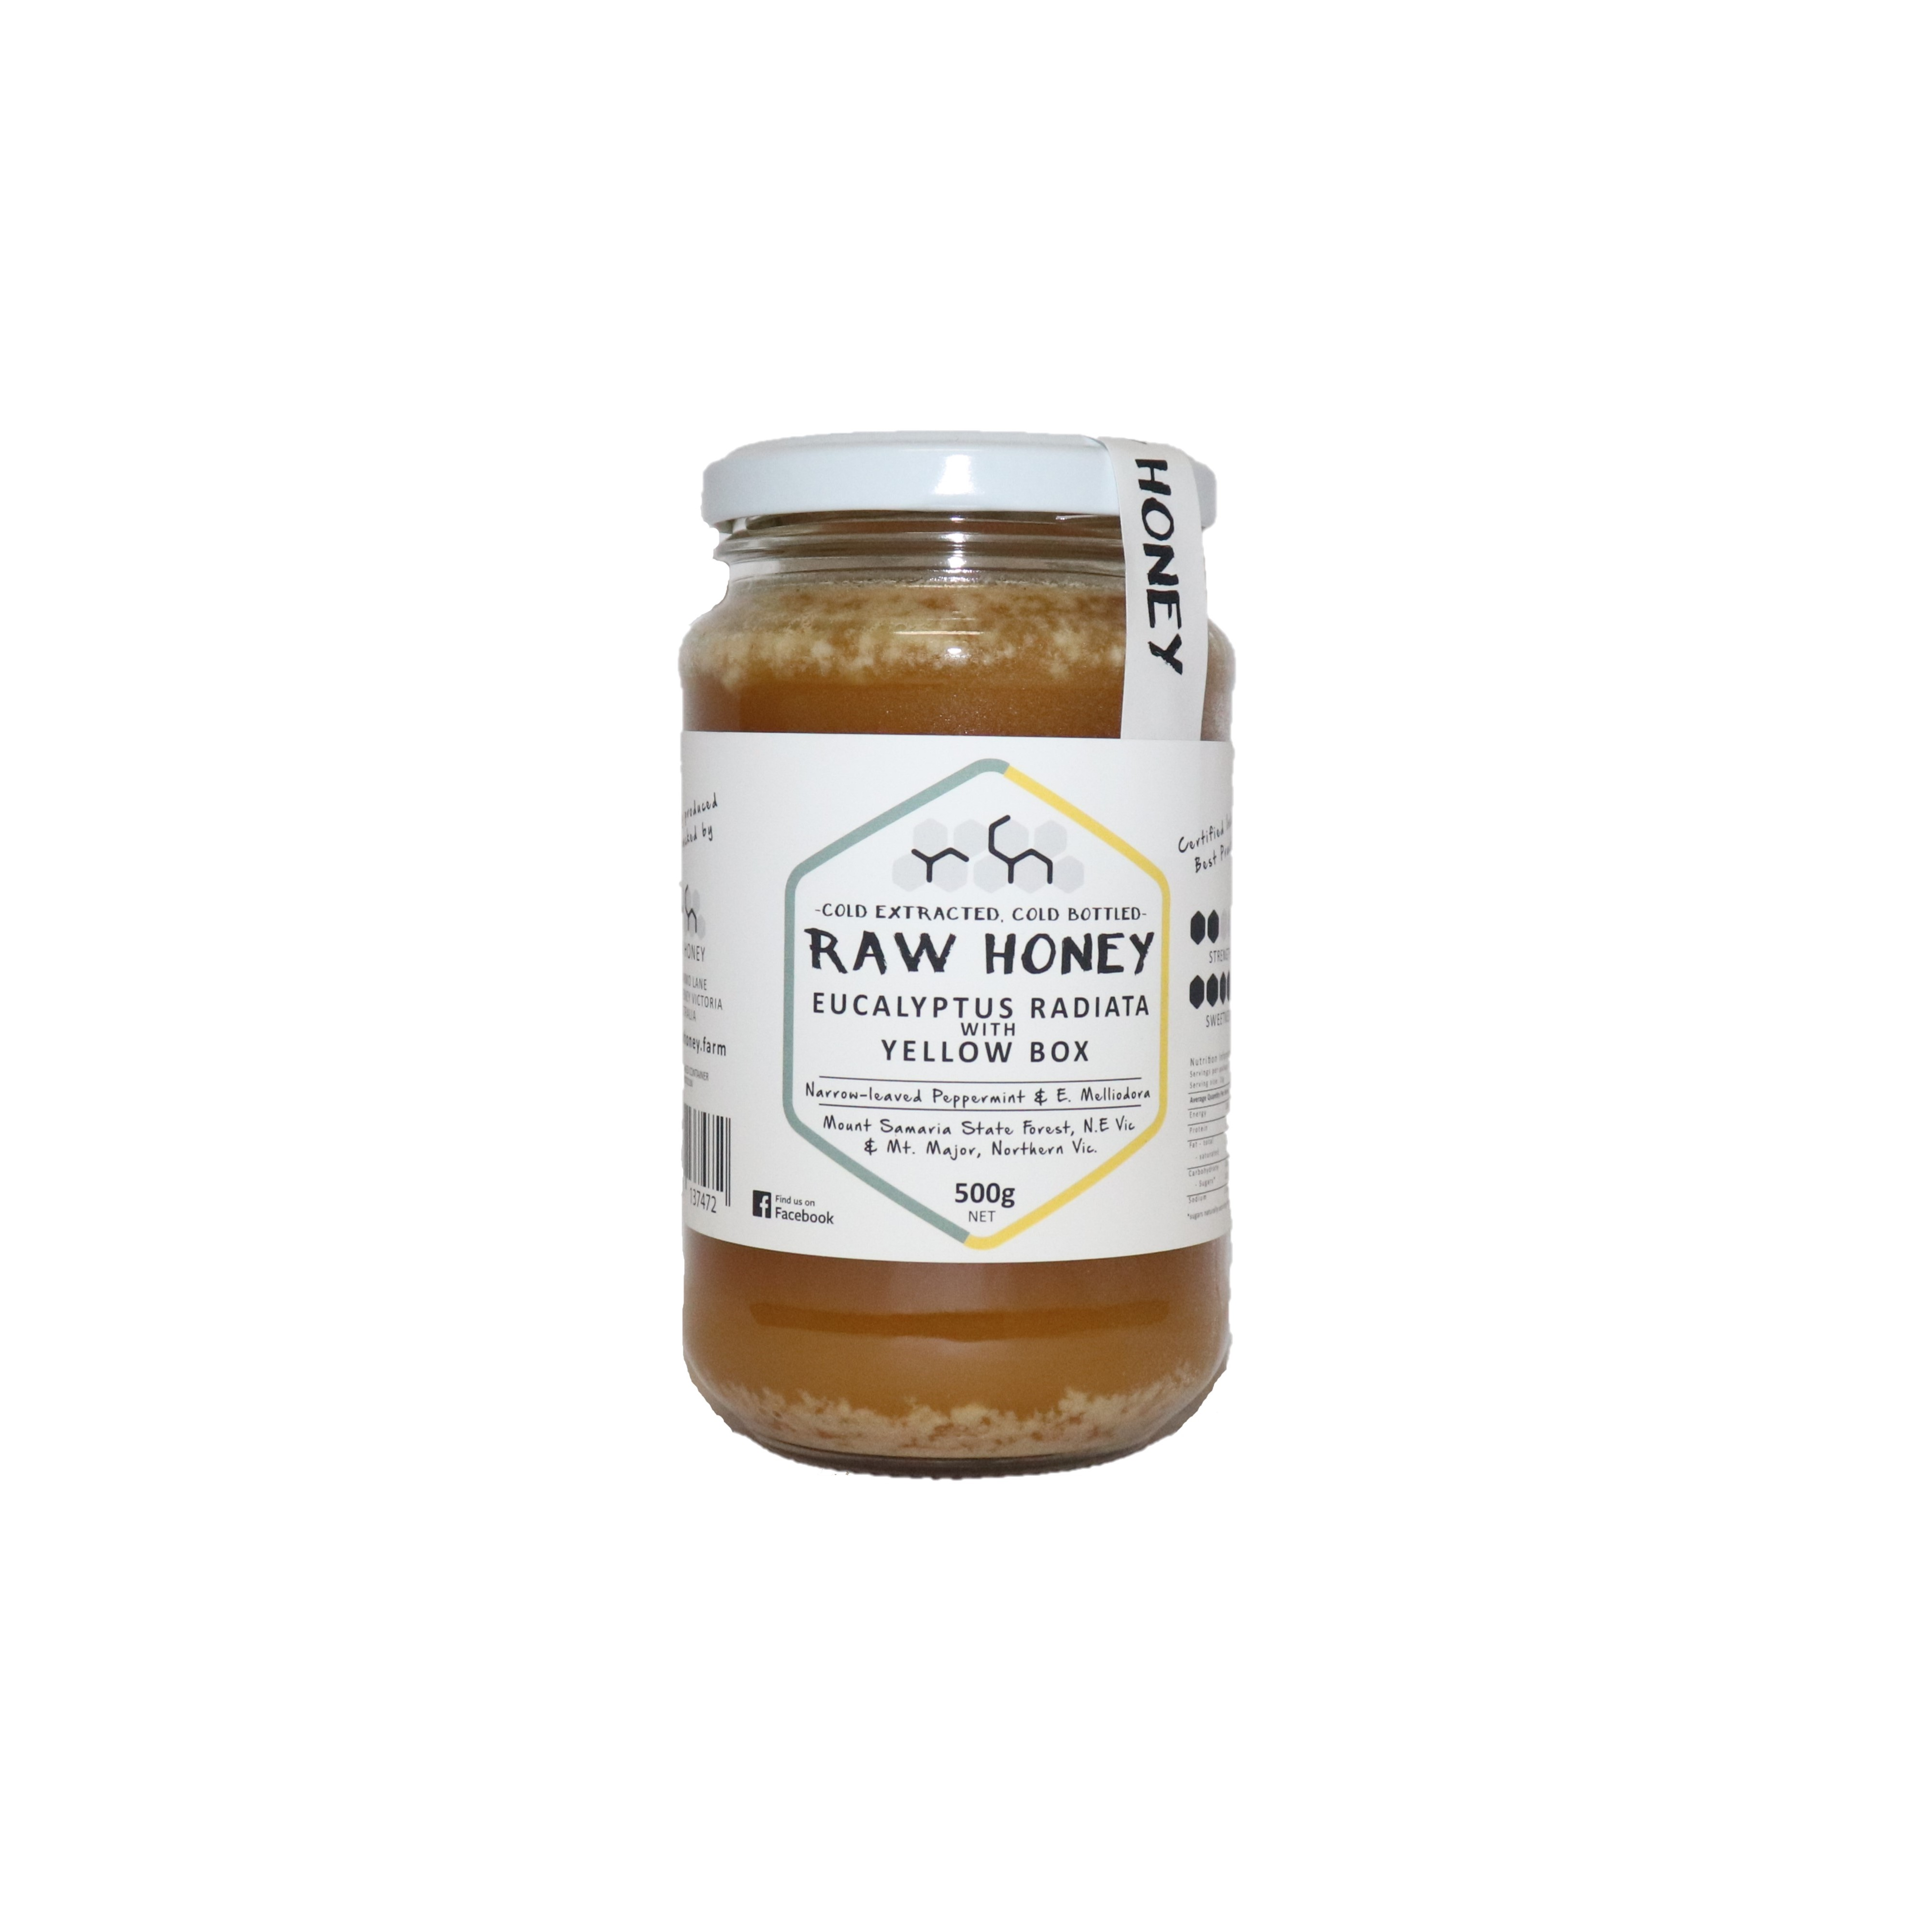 Raw Honey – Eucalyptus with Yellow Box 500g